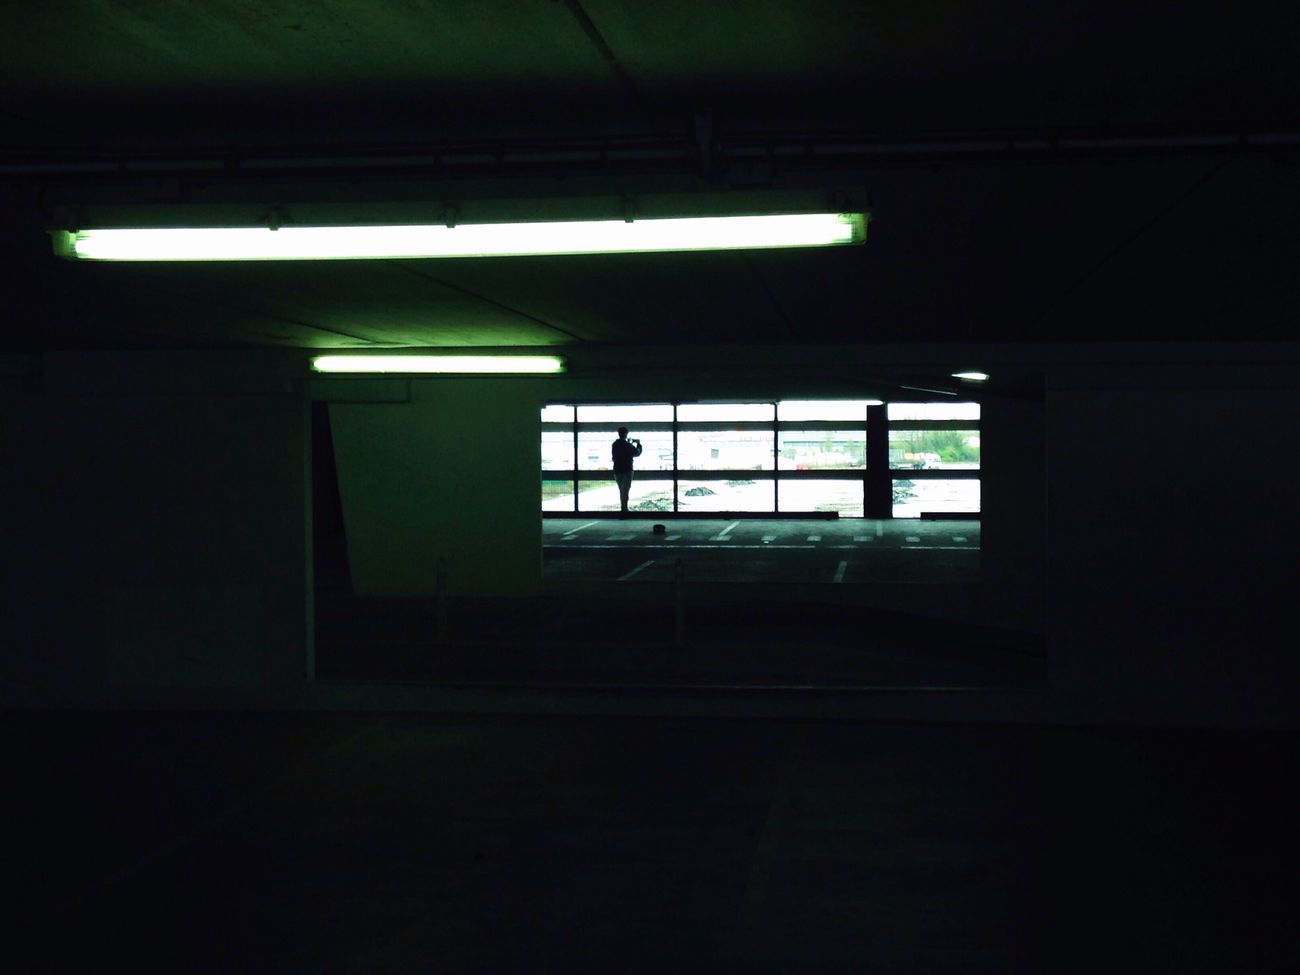 Cutting space. Indoors  Architecture Built Structure Day Illuminated Silhouette Greenish Light And Shadow Car Park Tungsten